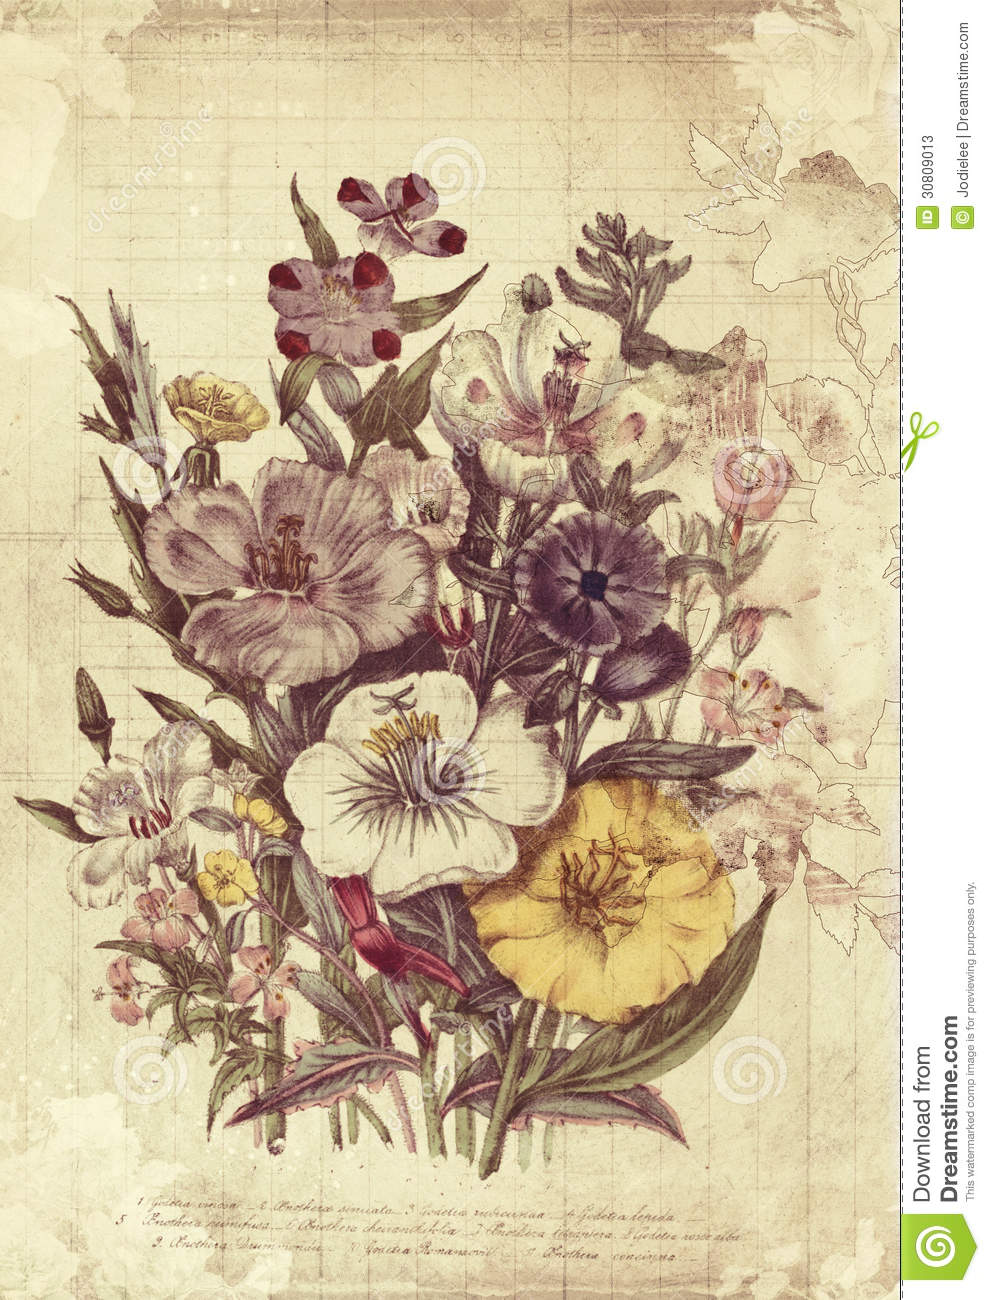 Flowers botanical vintage style wall art with textured background